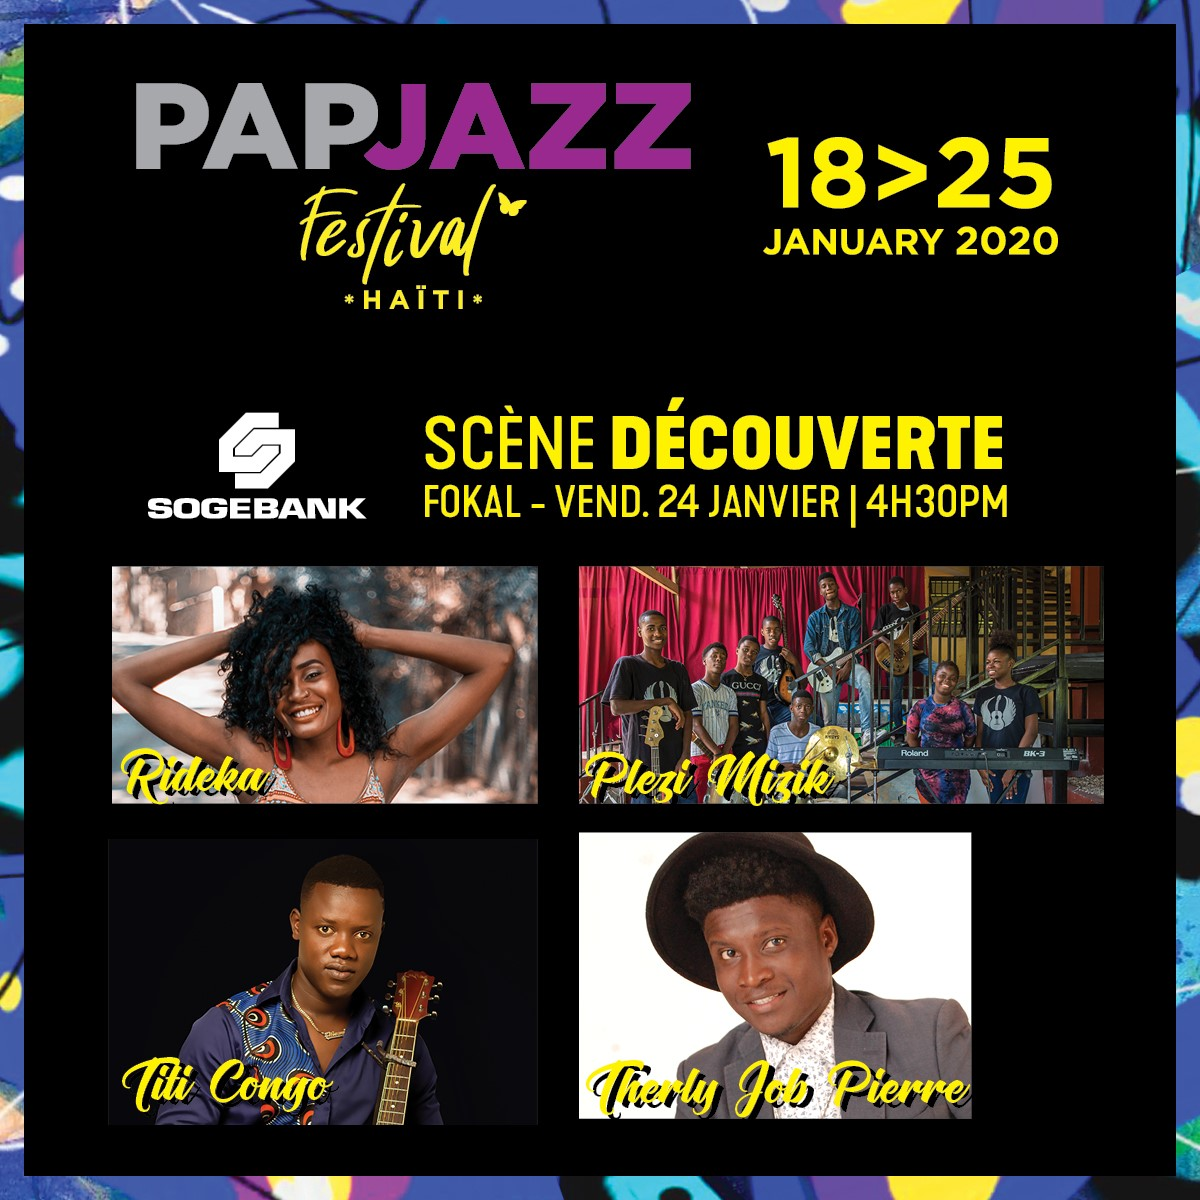 Pap JAzz decouverte